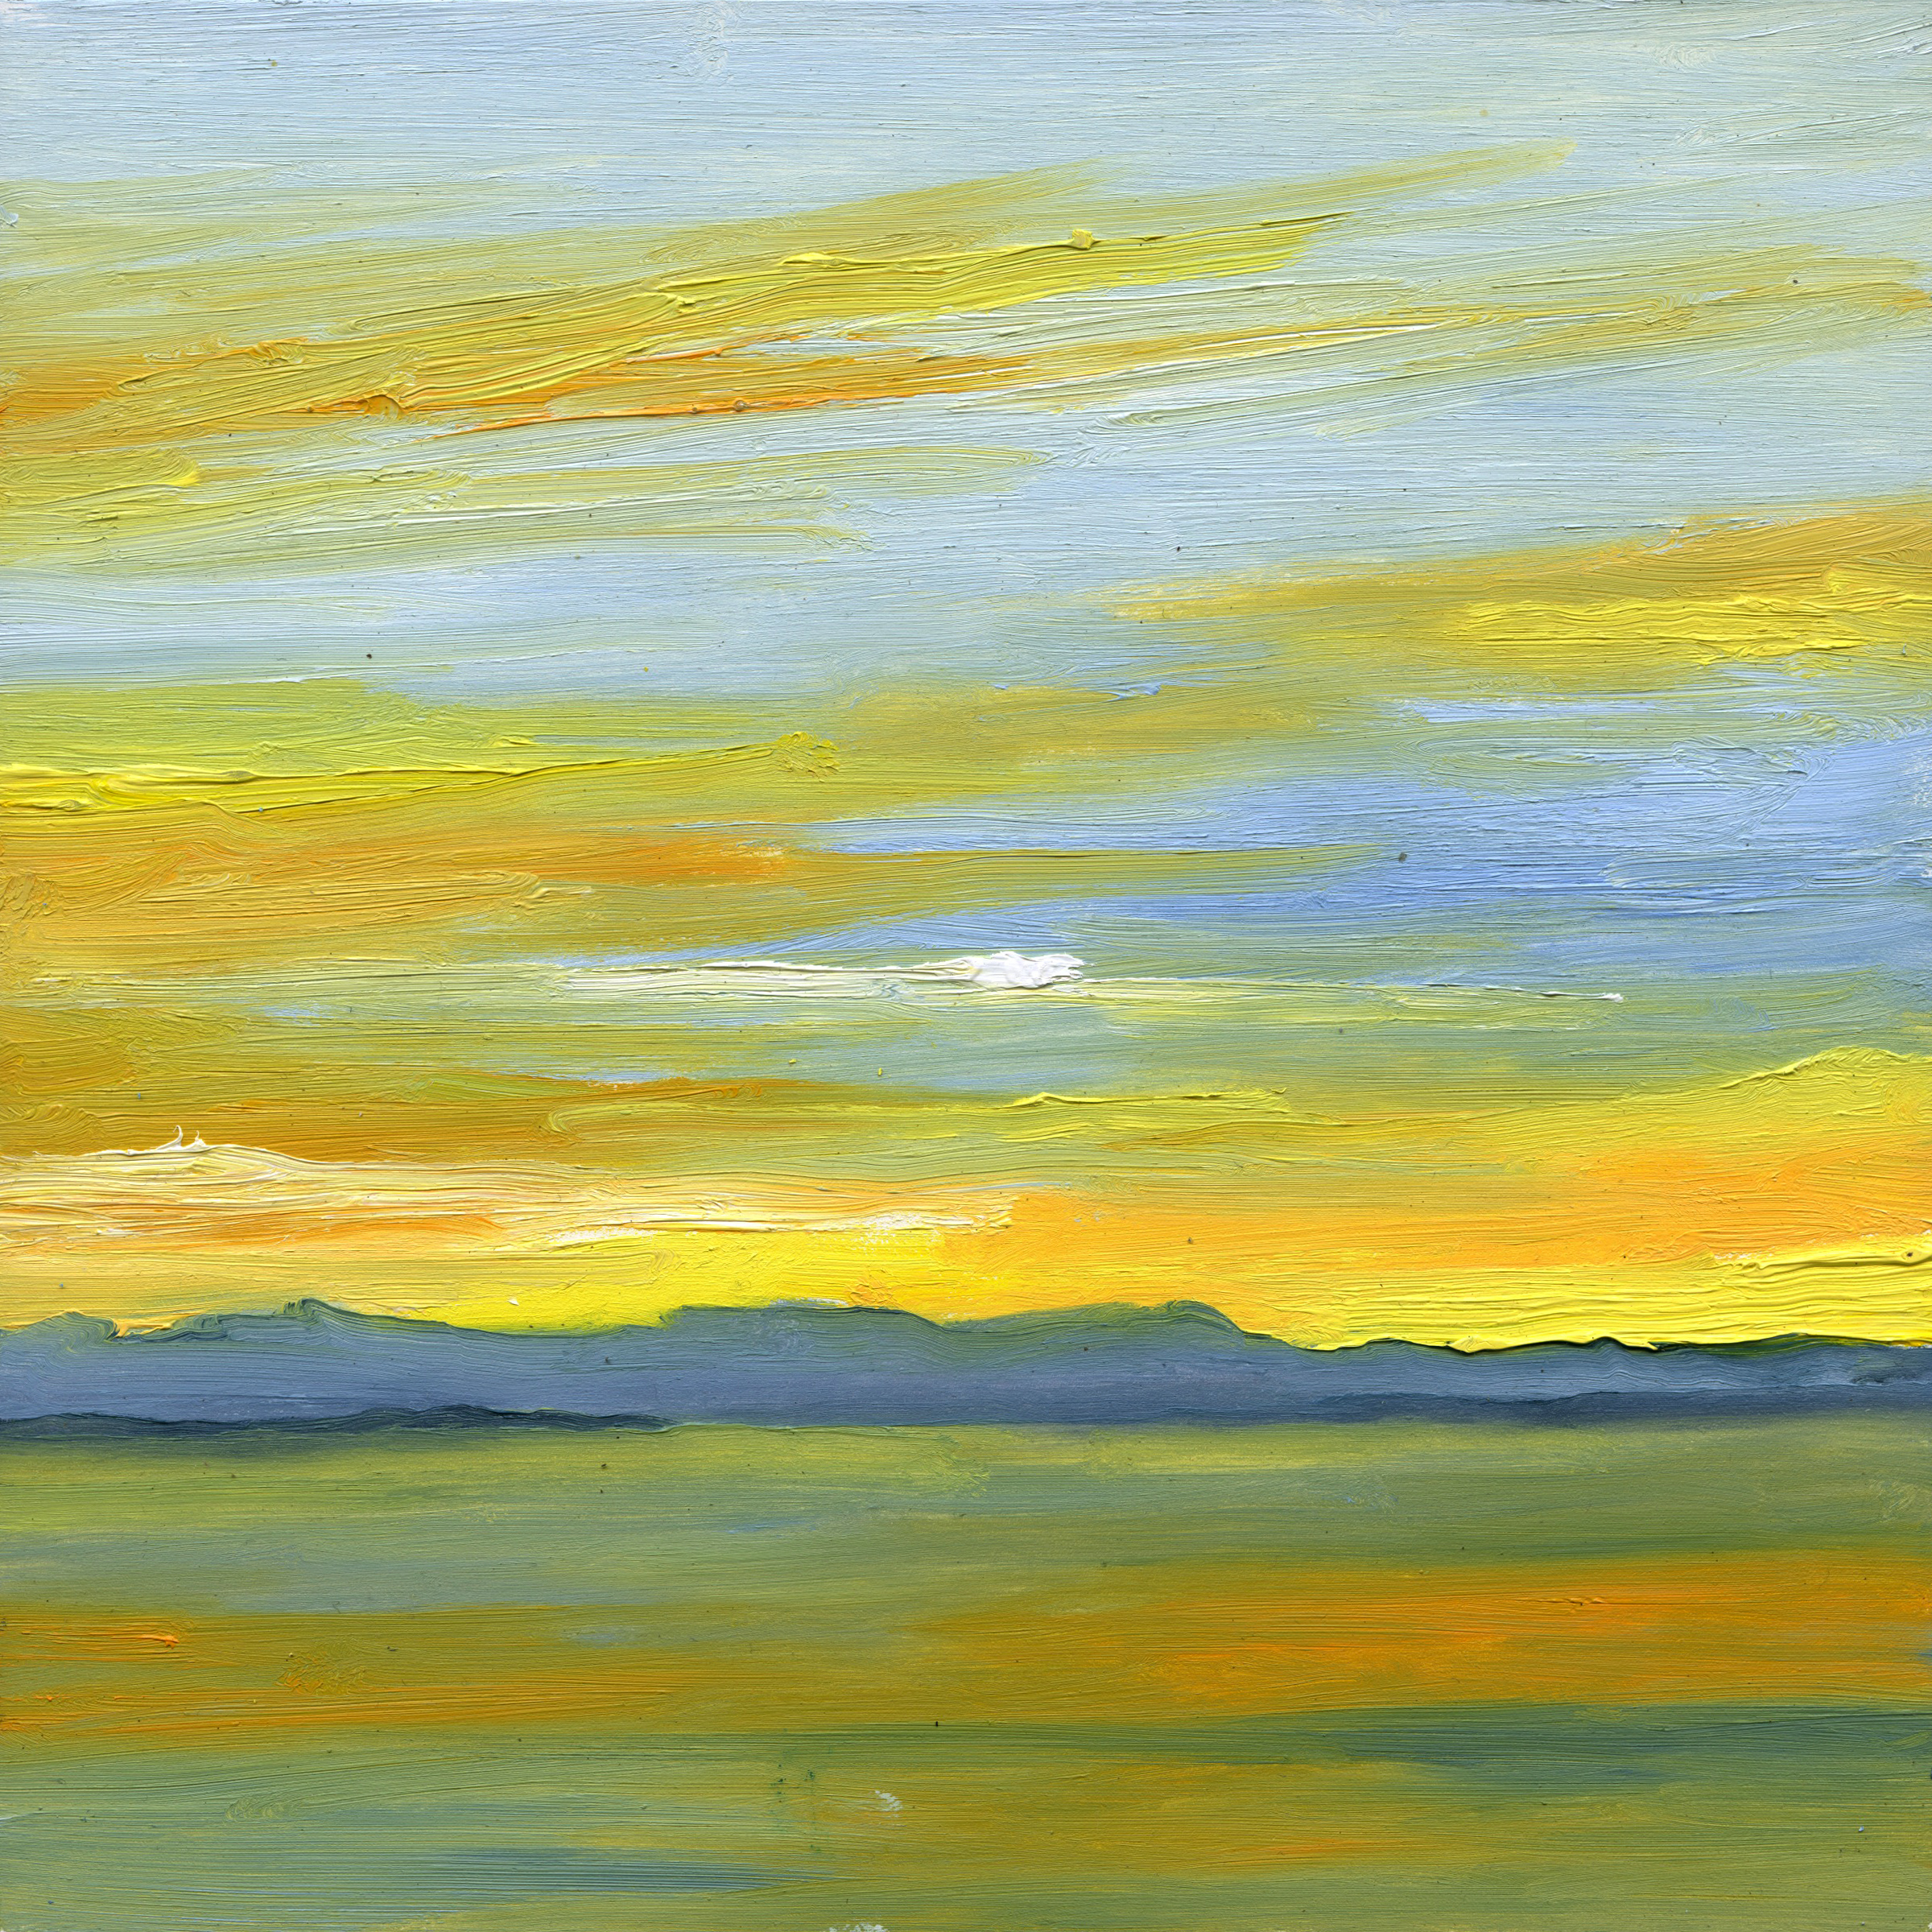 At The Horizon - Puget Sound From Burien WA, oil on board, 8 by 8 inches, 2015, $1000